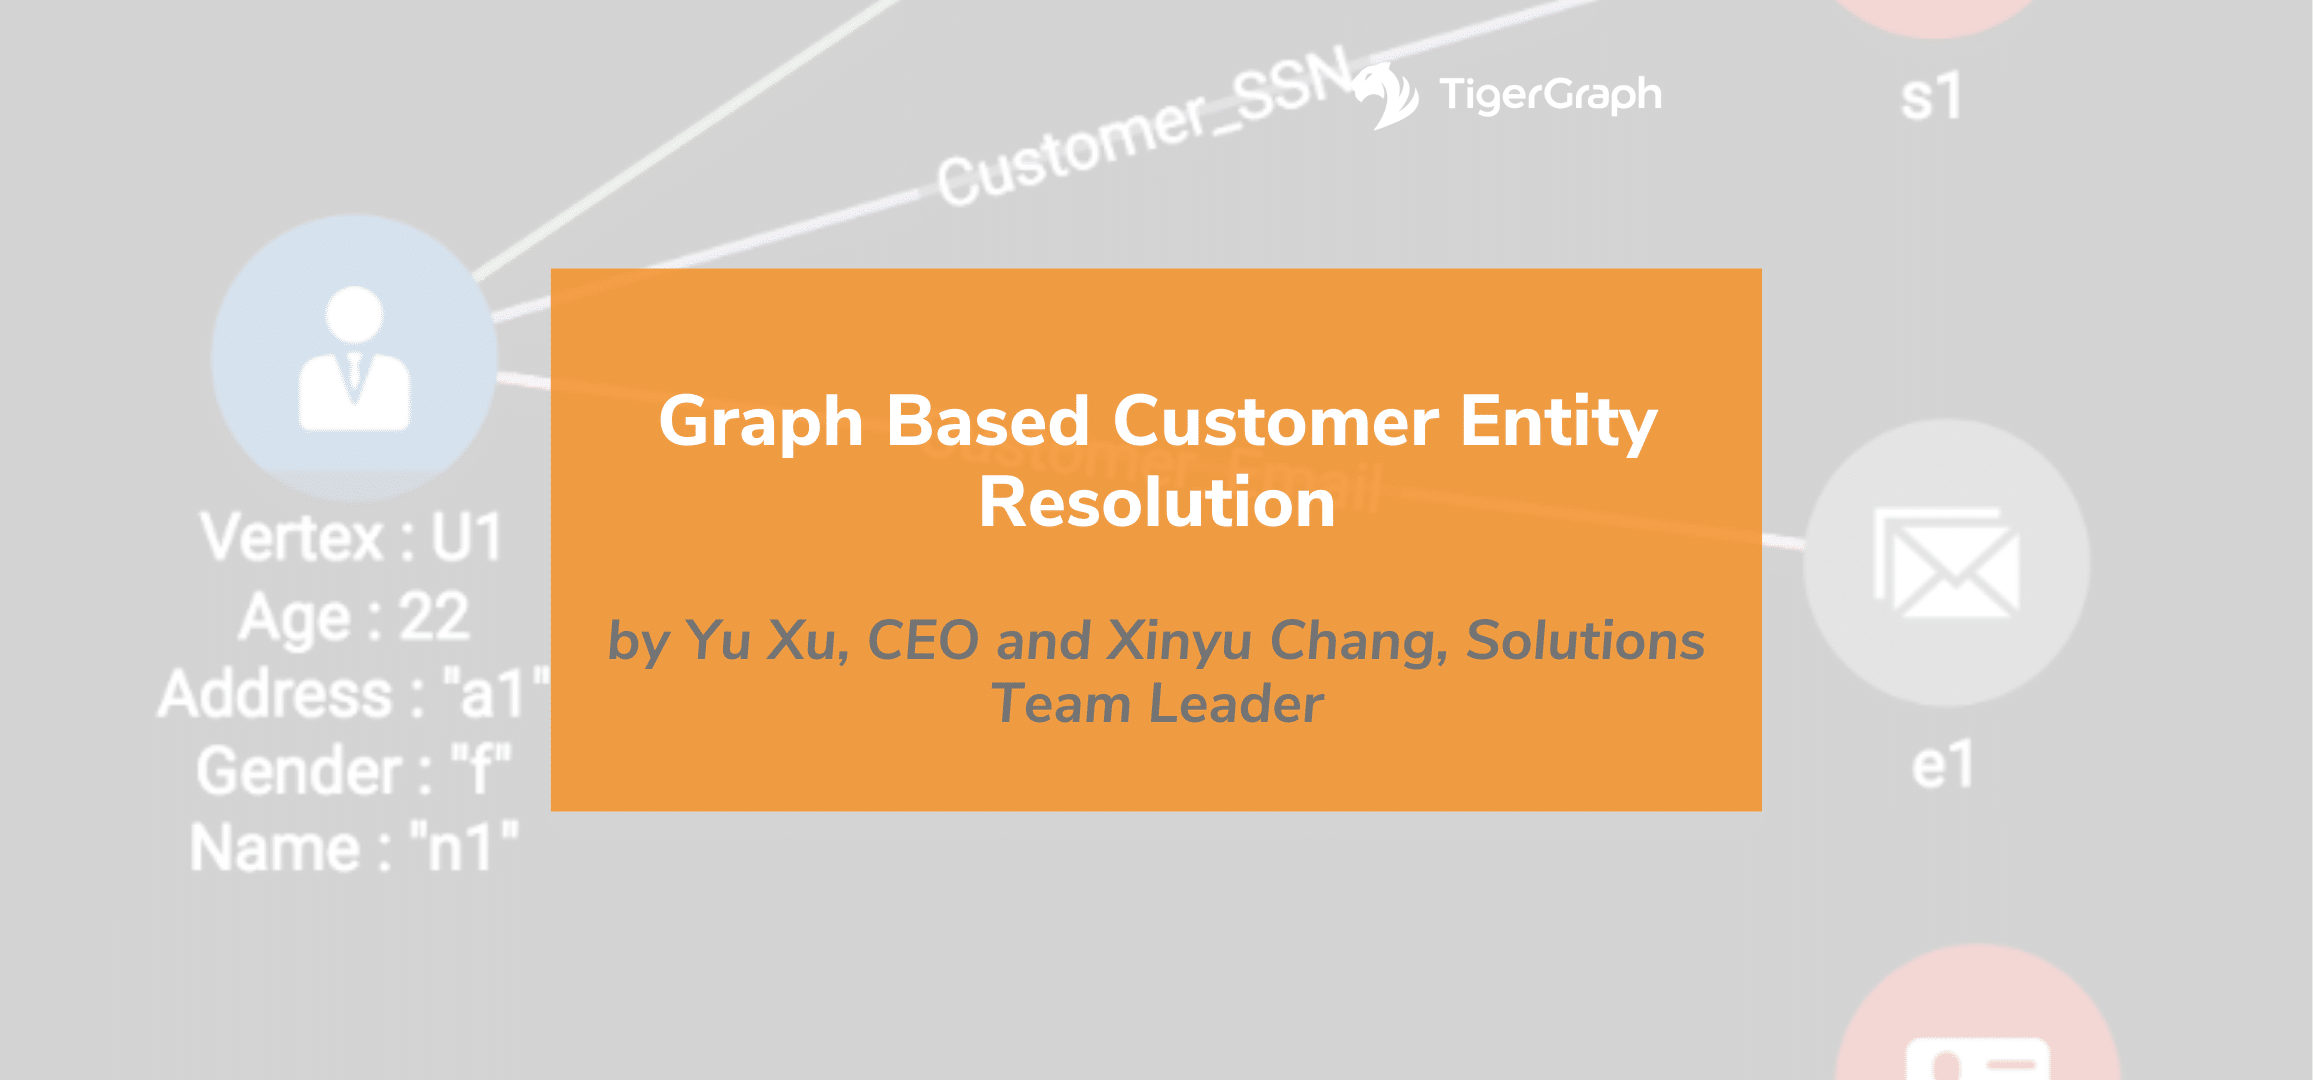 Graph-Based Customer Entity Resolution